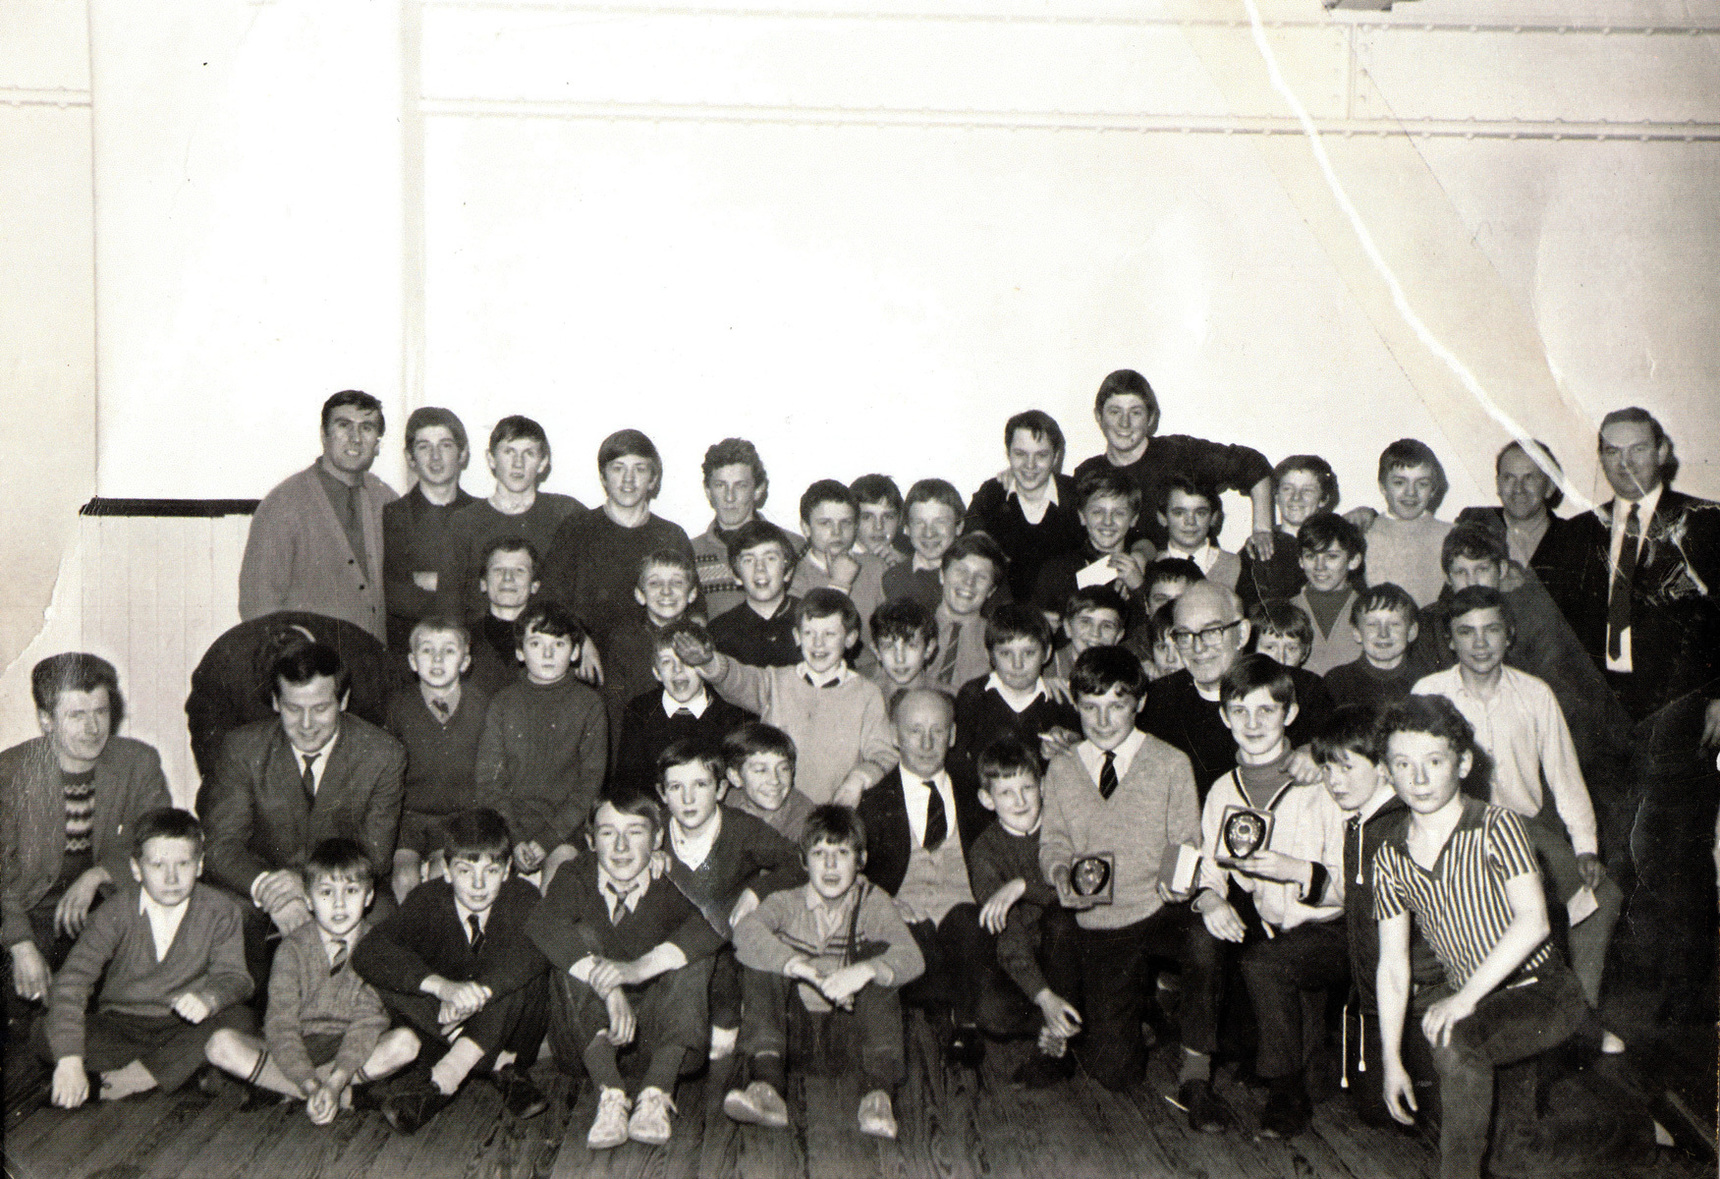 Unidentified Leith School Or Society Group 1960s